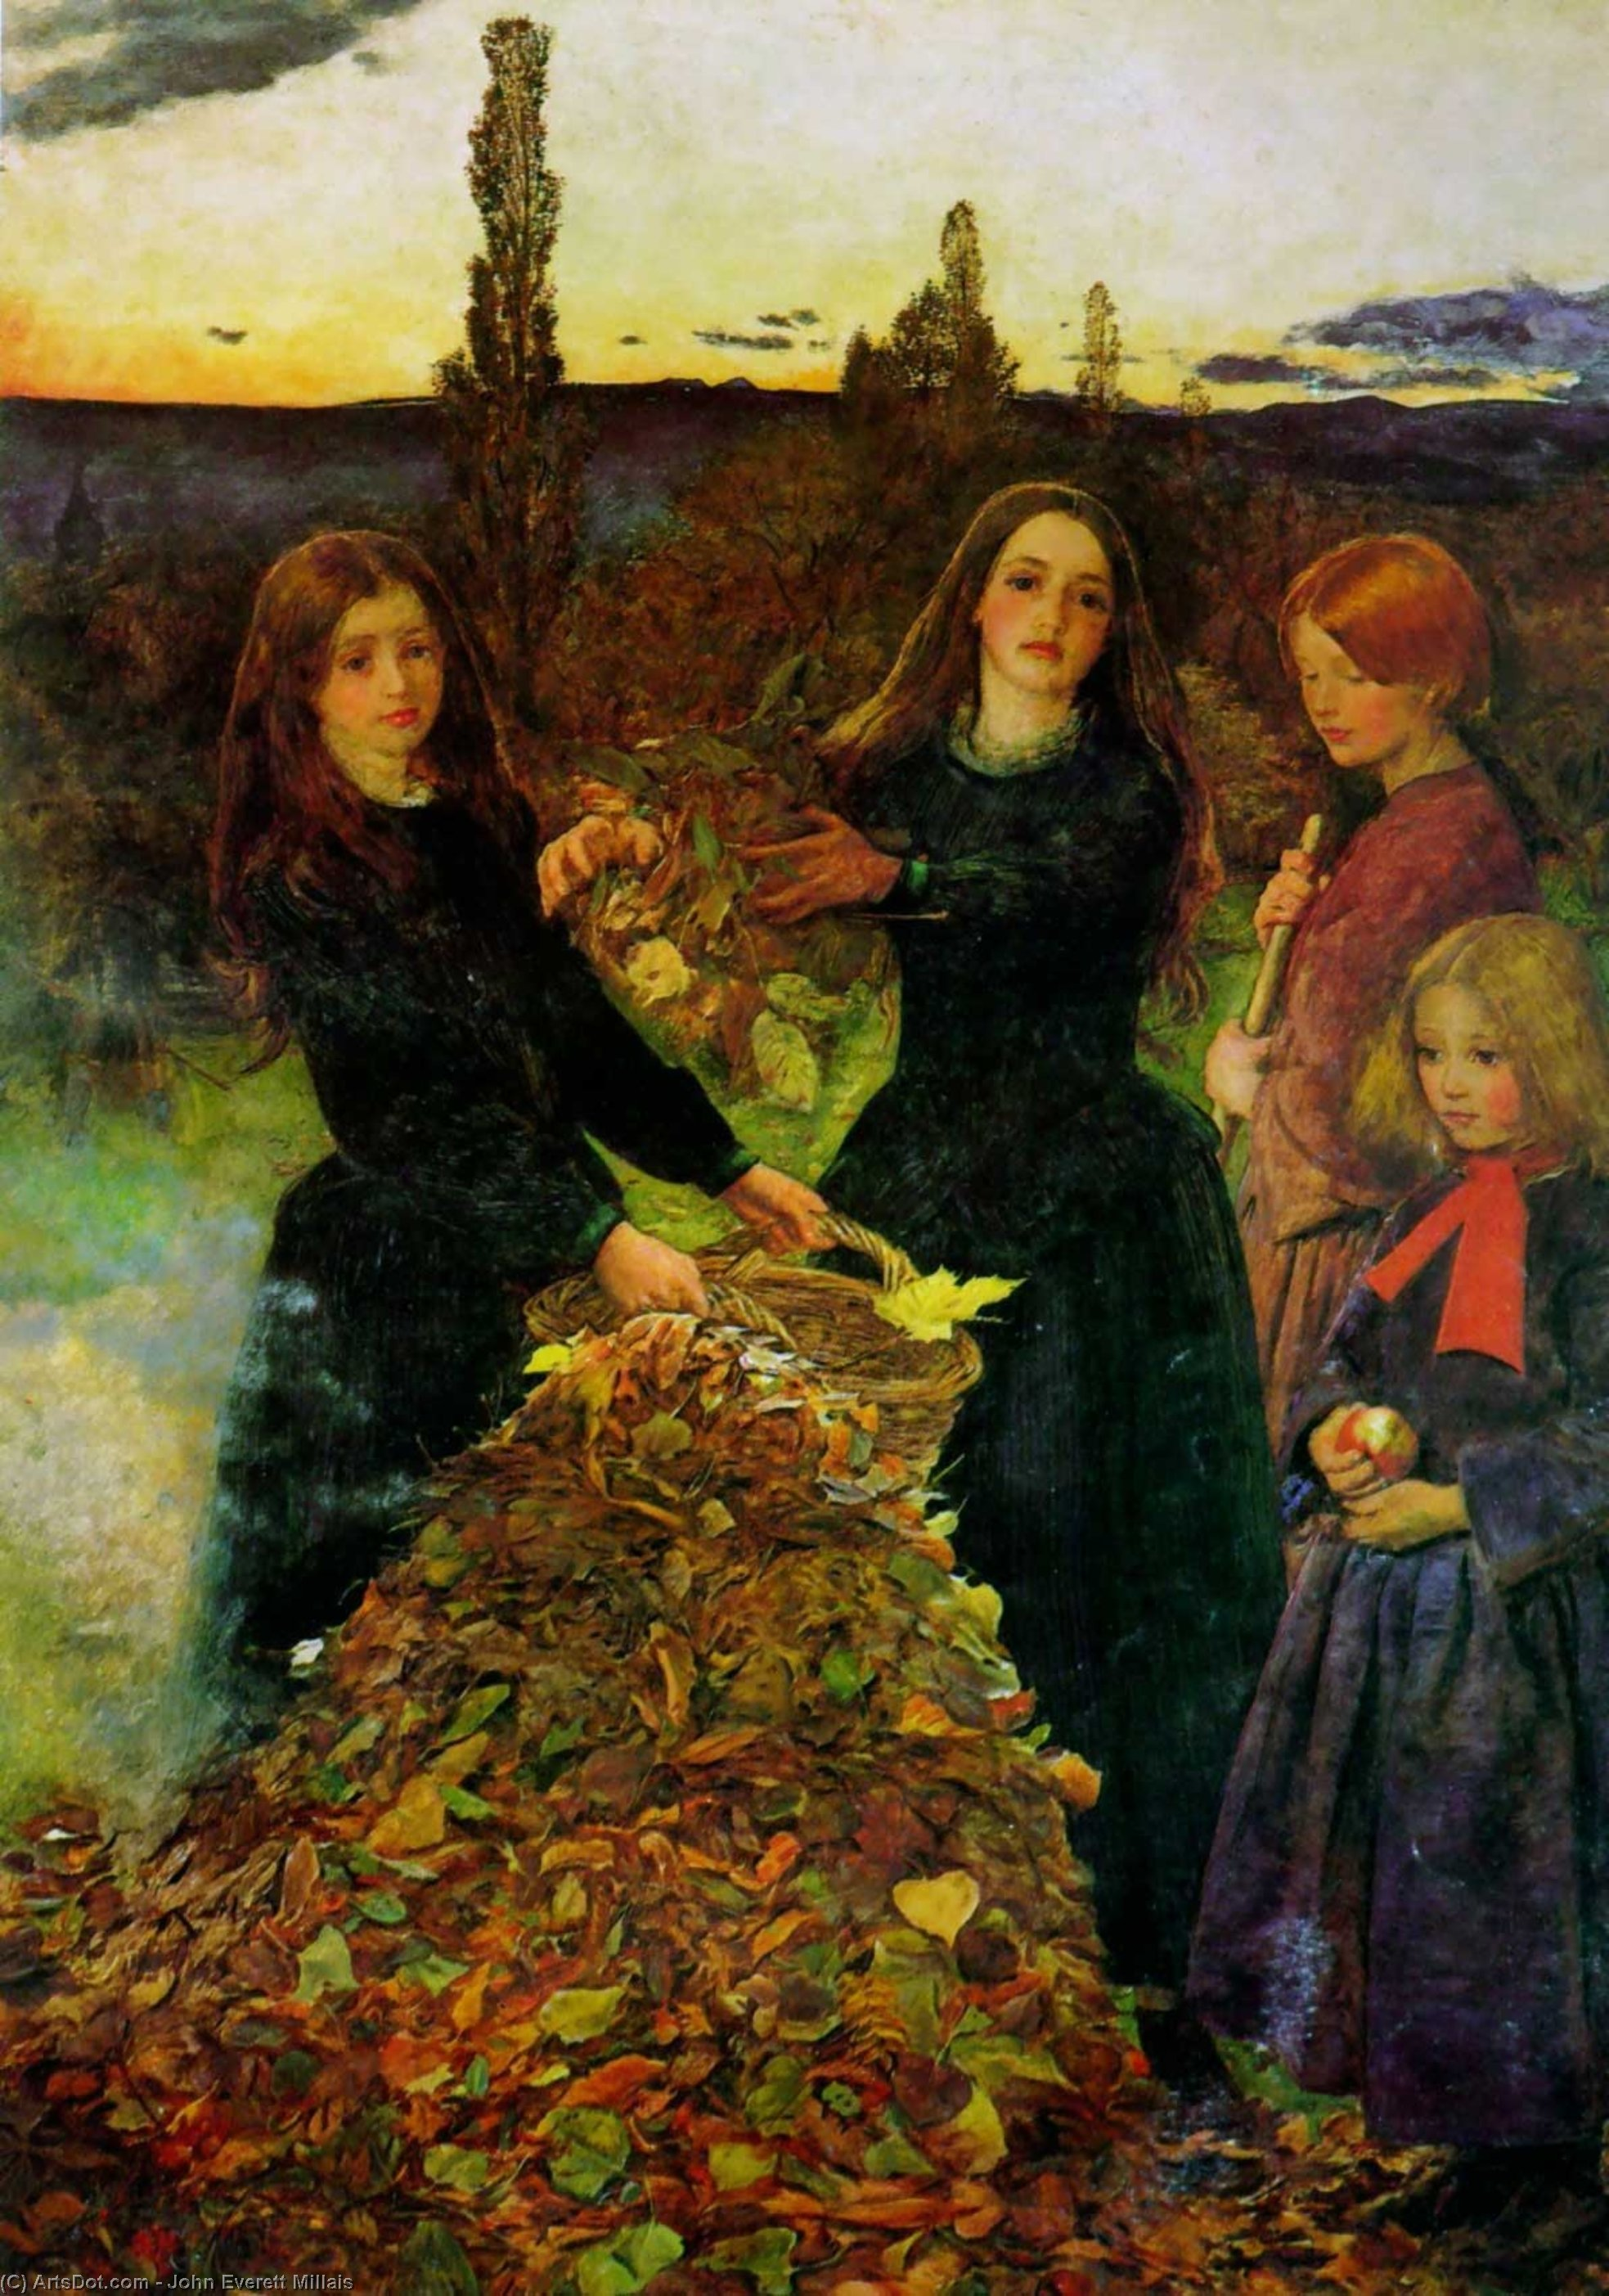 Wikioo.org - The Encyclopedia of Fine Arts - Painting, Artwork by John Everett Millais - Autumn Leaves